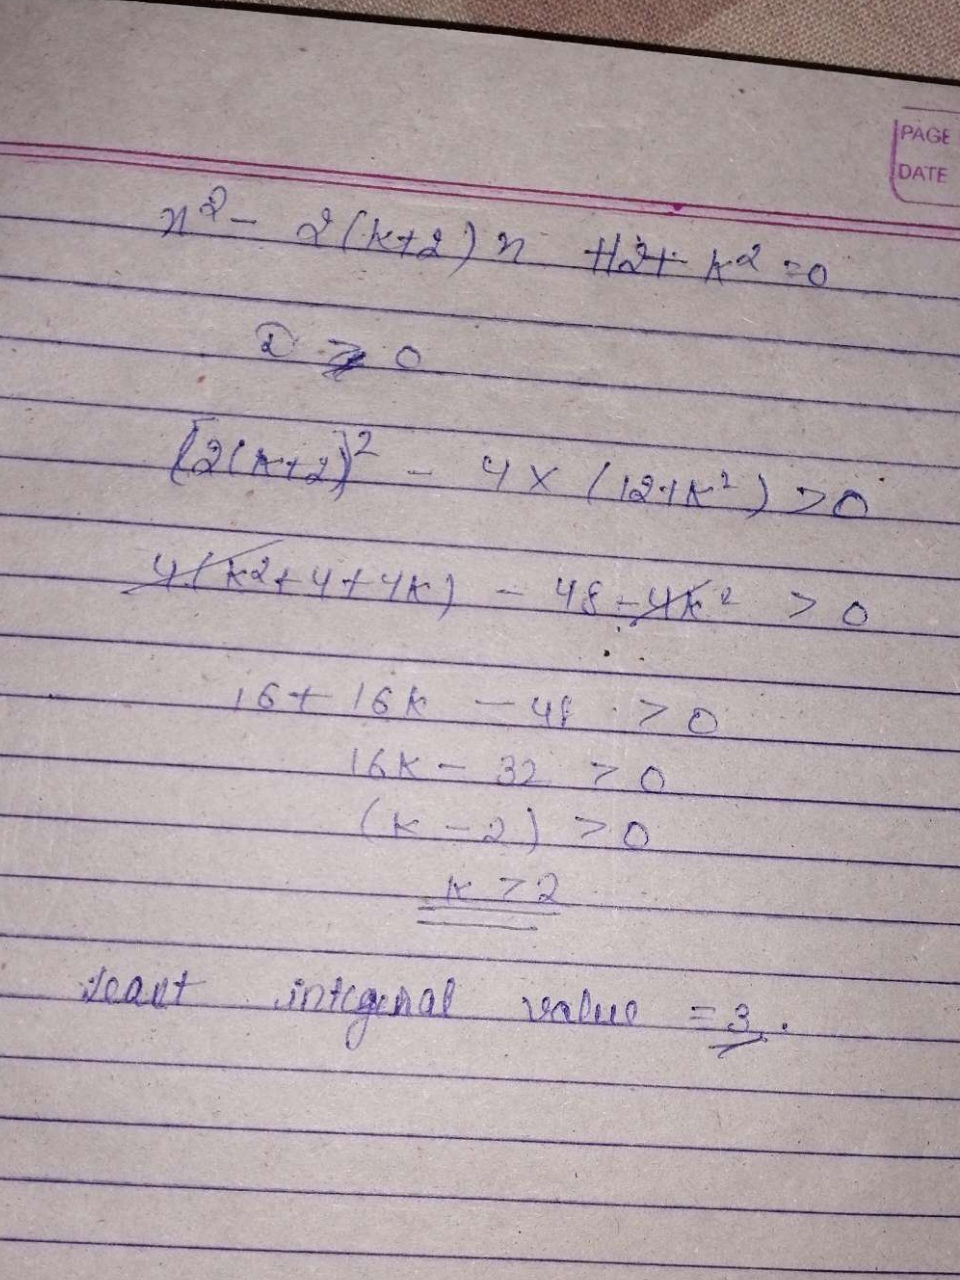 Find the least integral value of k for which the equation x^2 -2(k+2)x + 12 + k^2 = 0 has two different real roots.